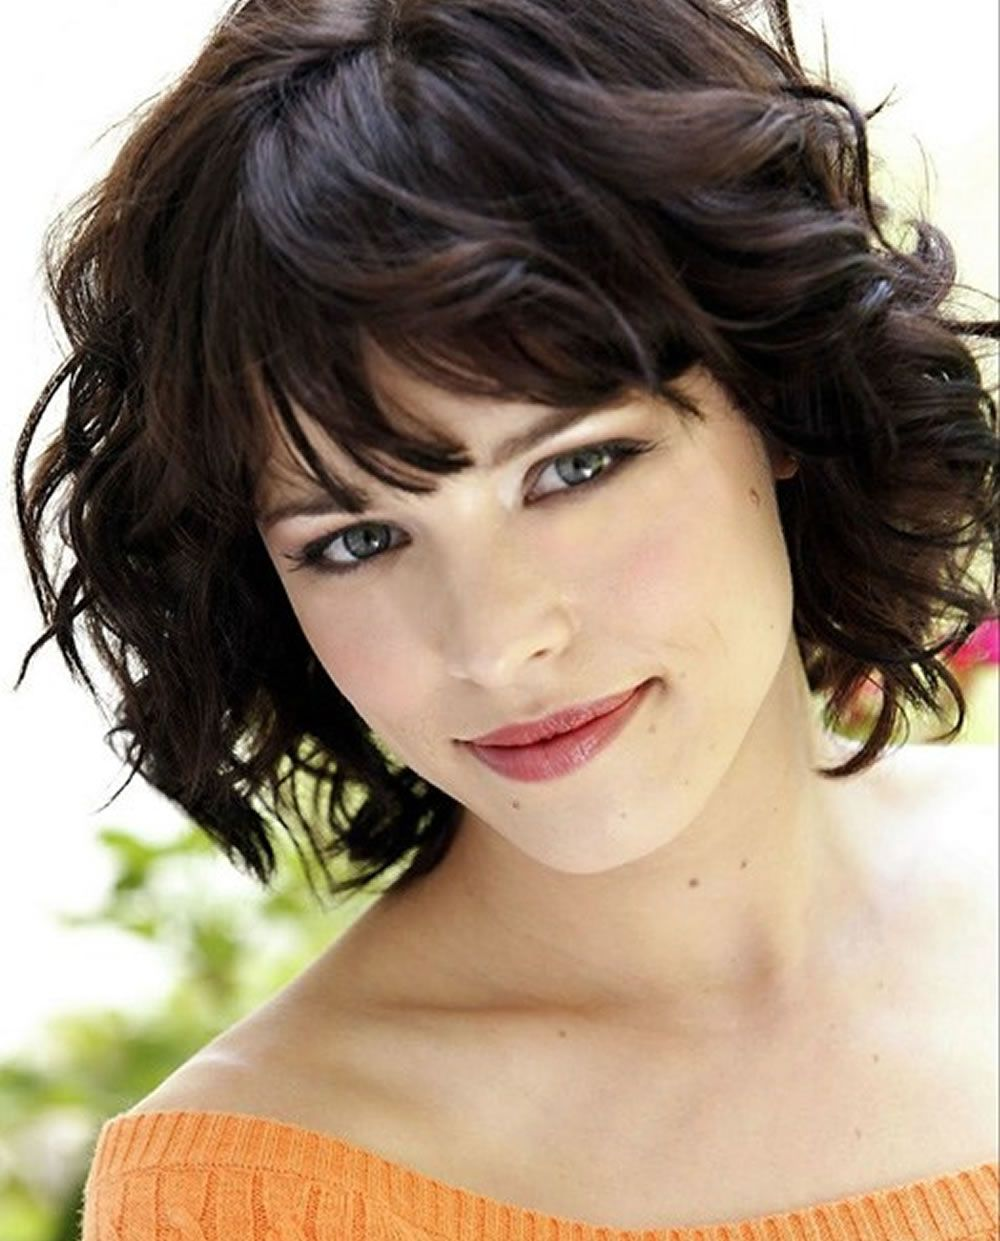 24 Wavy Hairstyles For Women With Square Faces 2019 Curly Hair 2019 Hairstyles For Curly Hair Short Haircuts With Bangs Short Hair Styles Thick Hair Styles